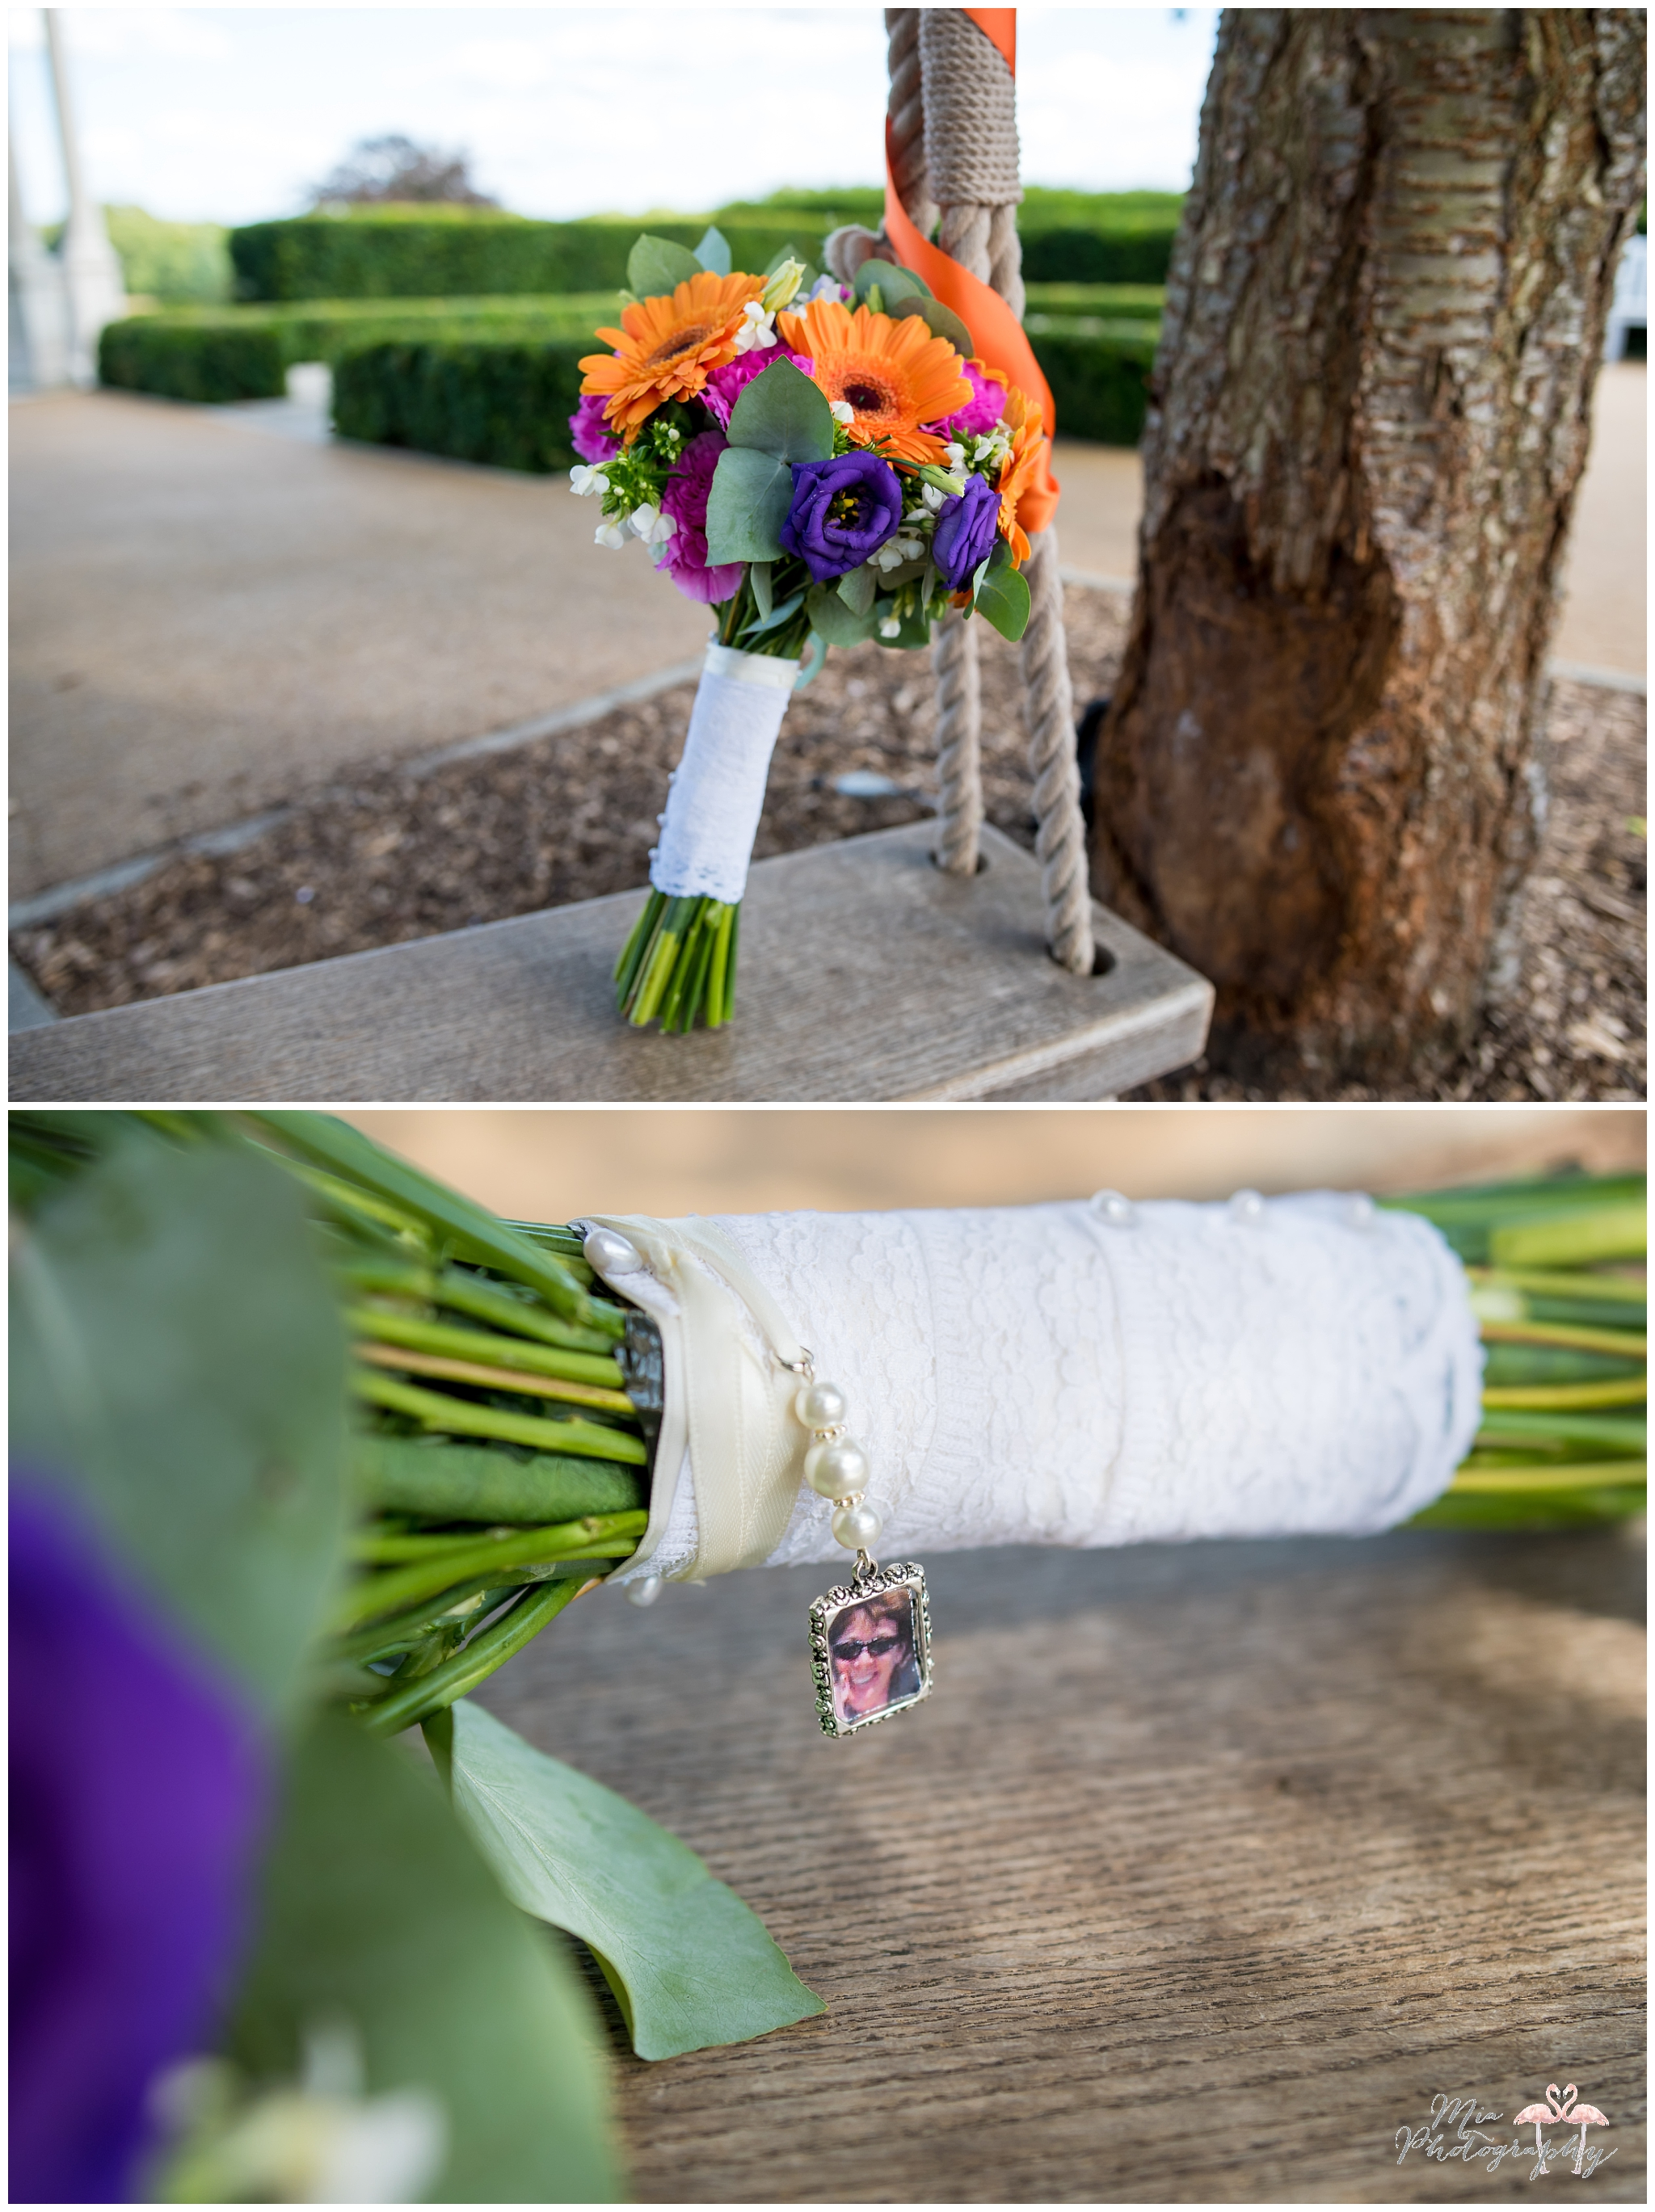 Bouquet with a special photo